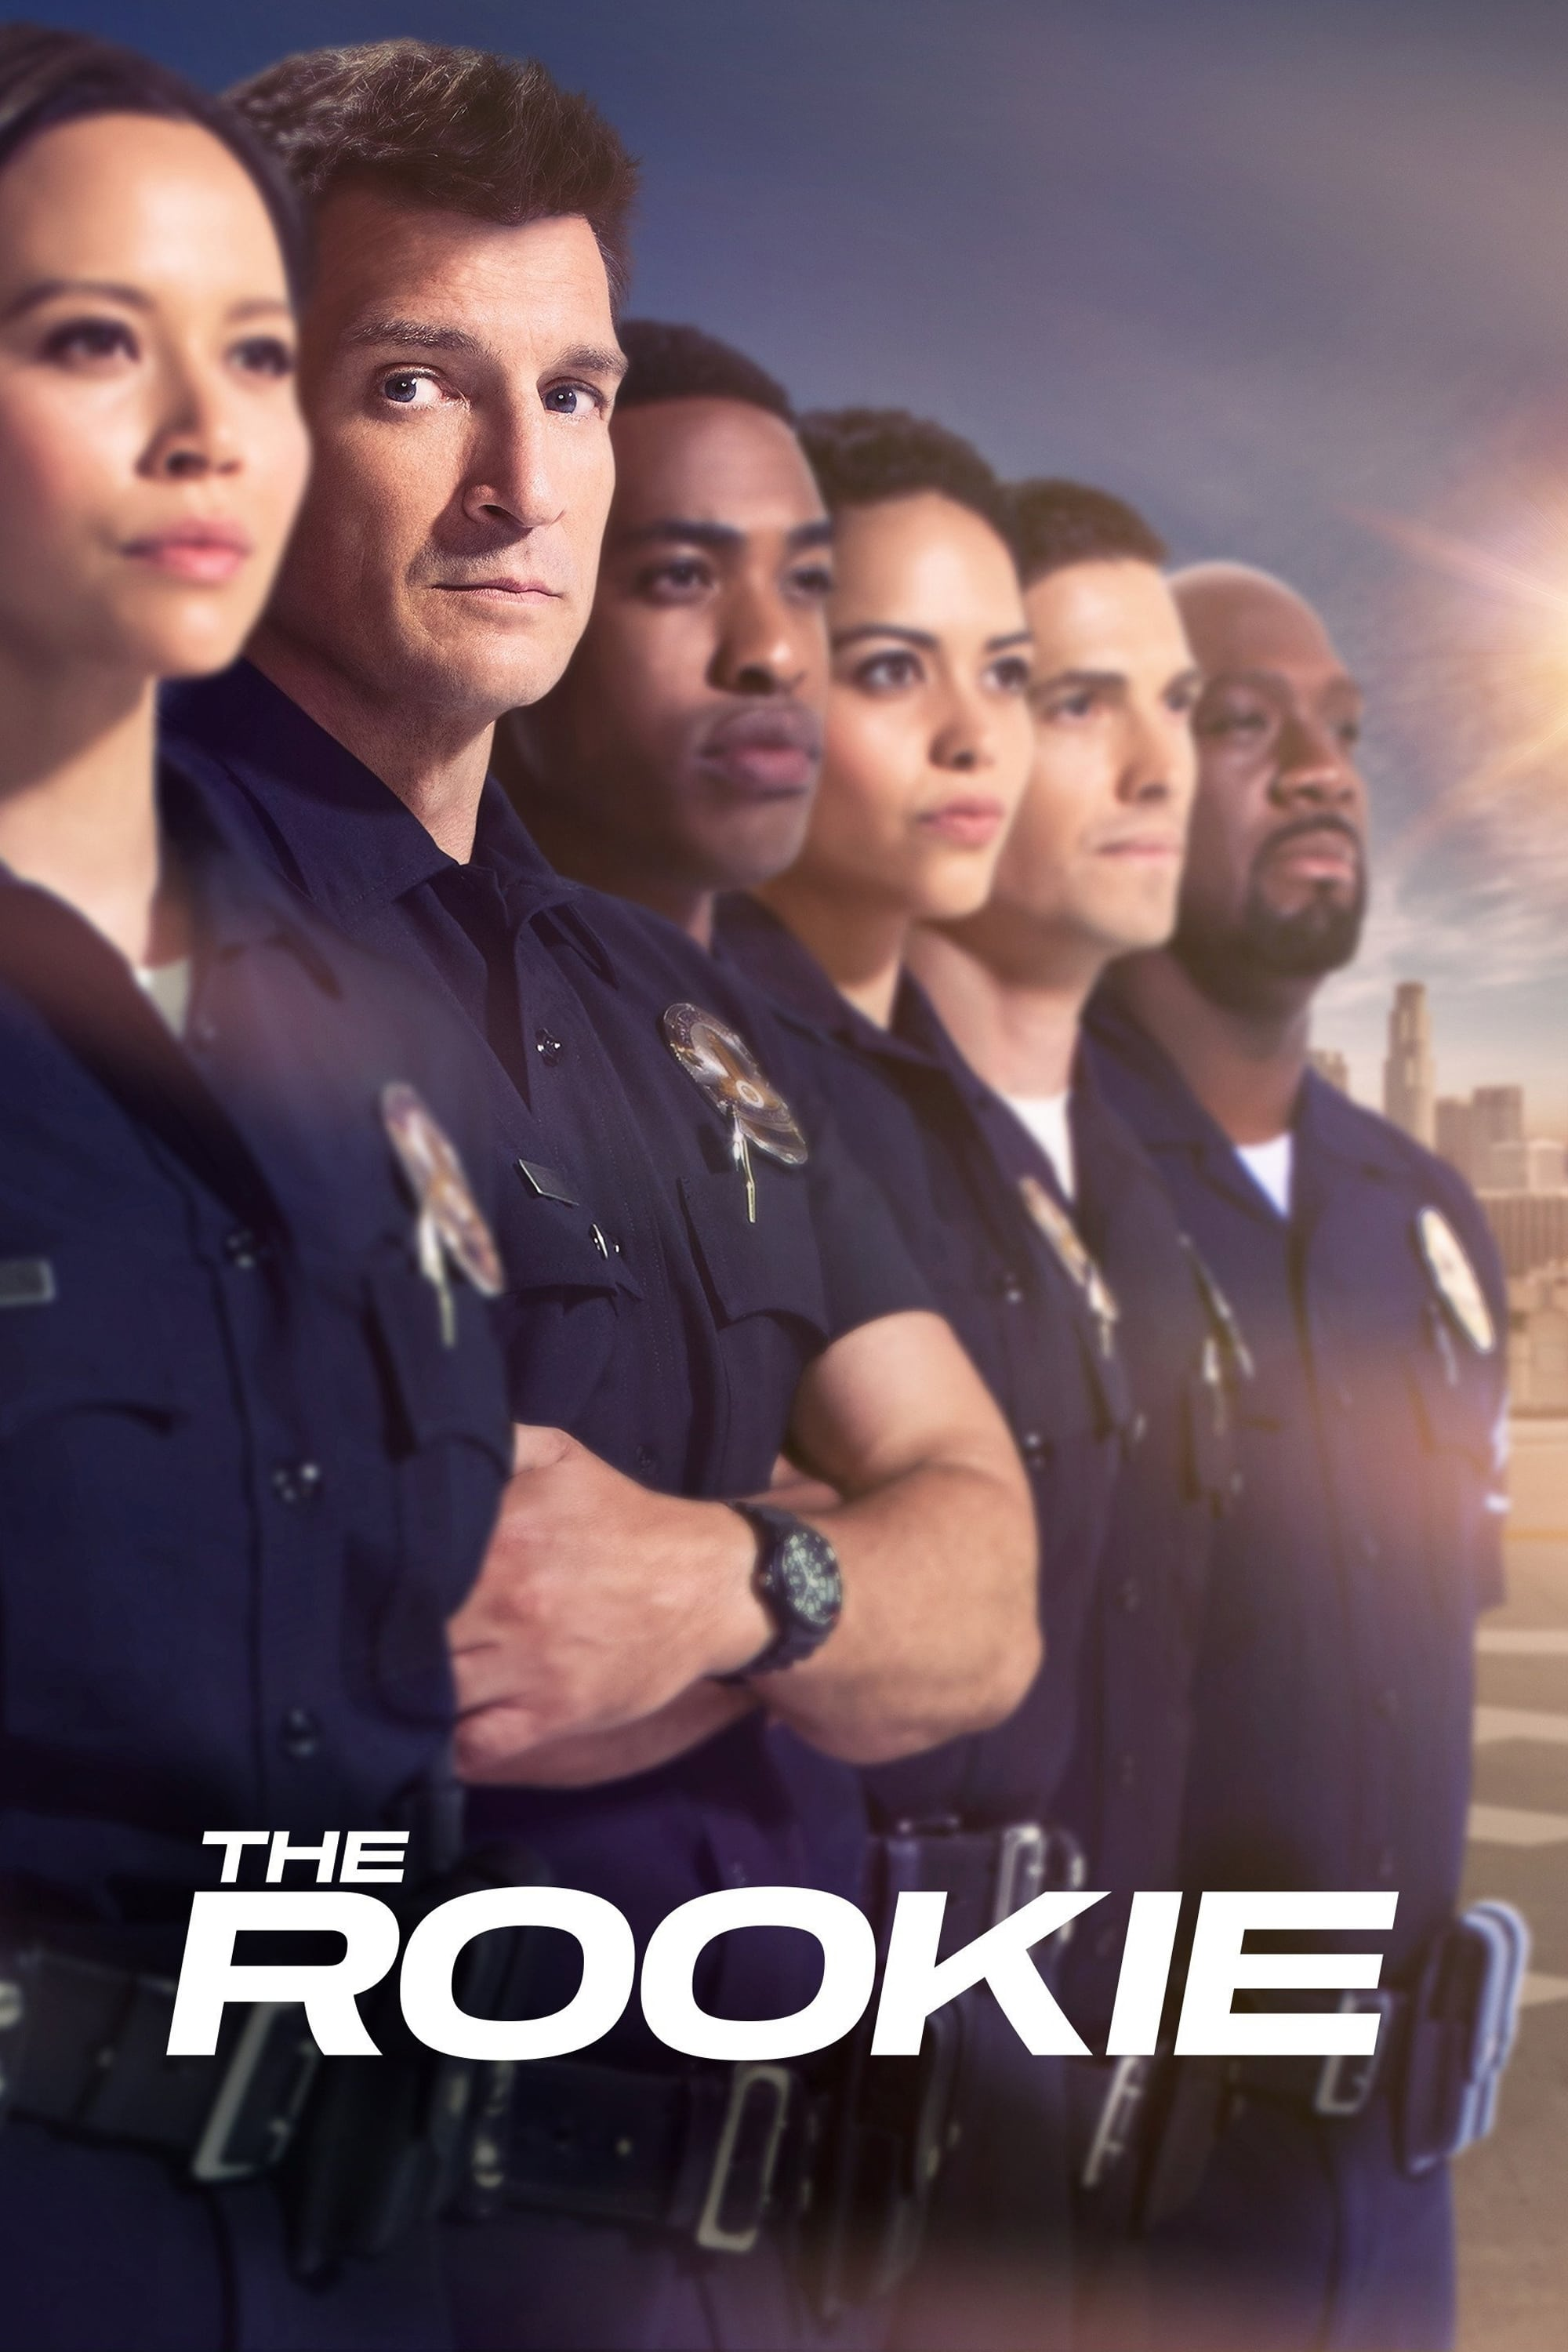 The Rookie Season 2